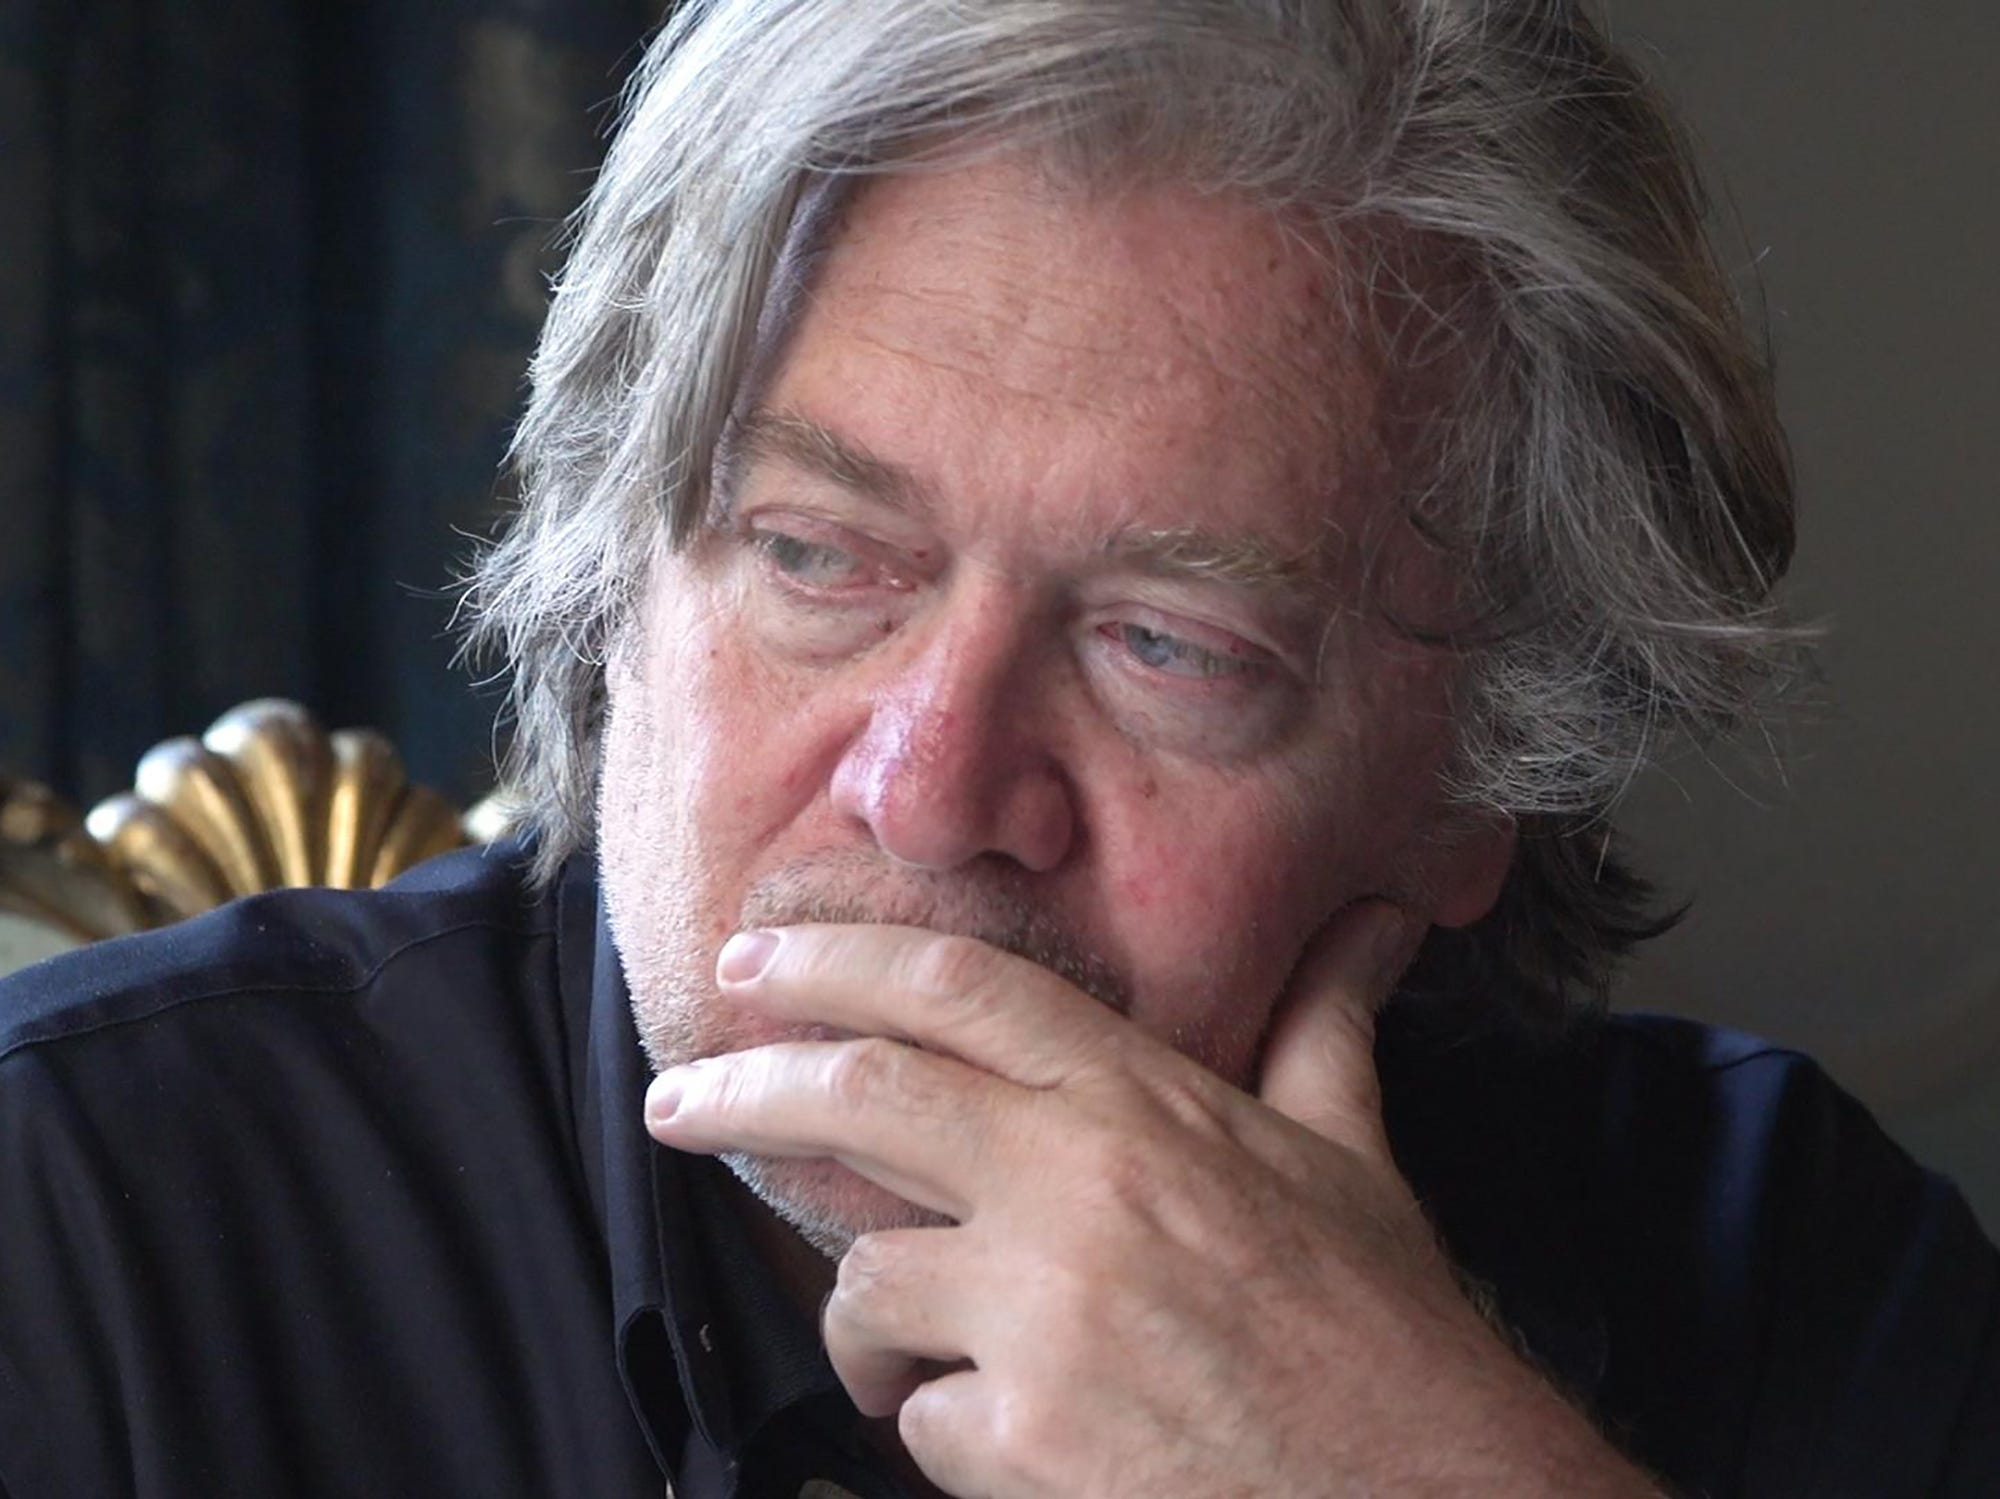 Steve Bannon says in revealing doc that he did 'the Lord's work' in Trump White House